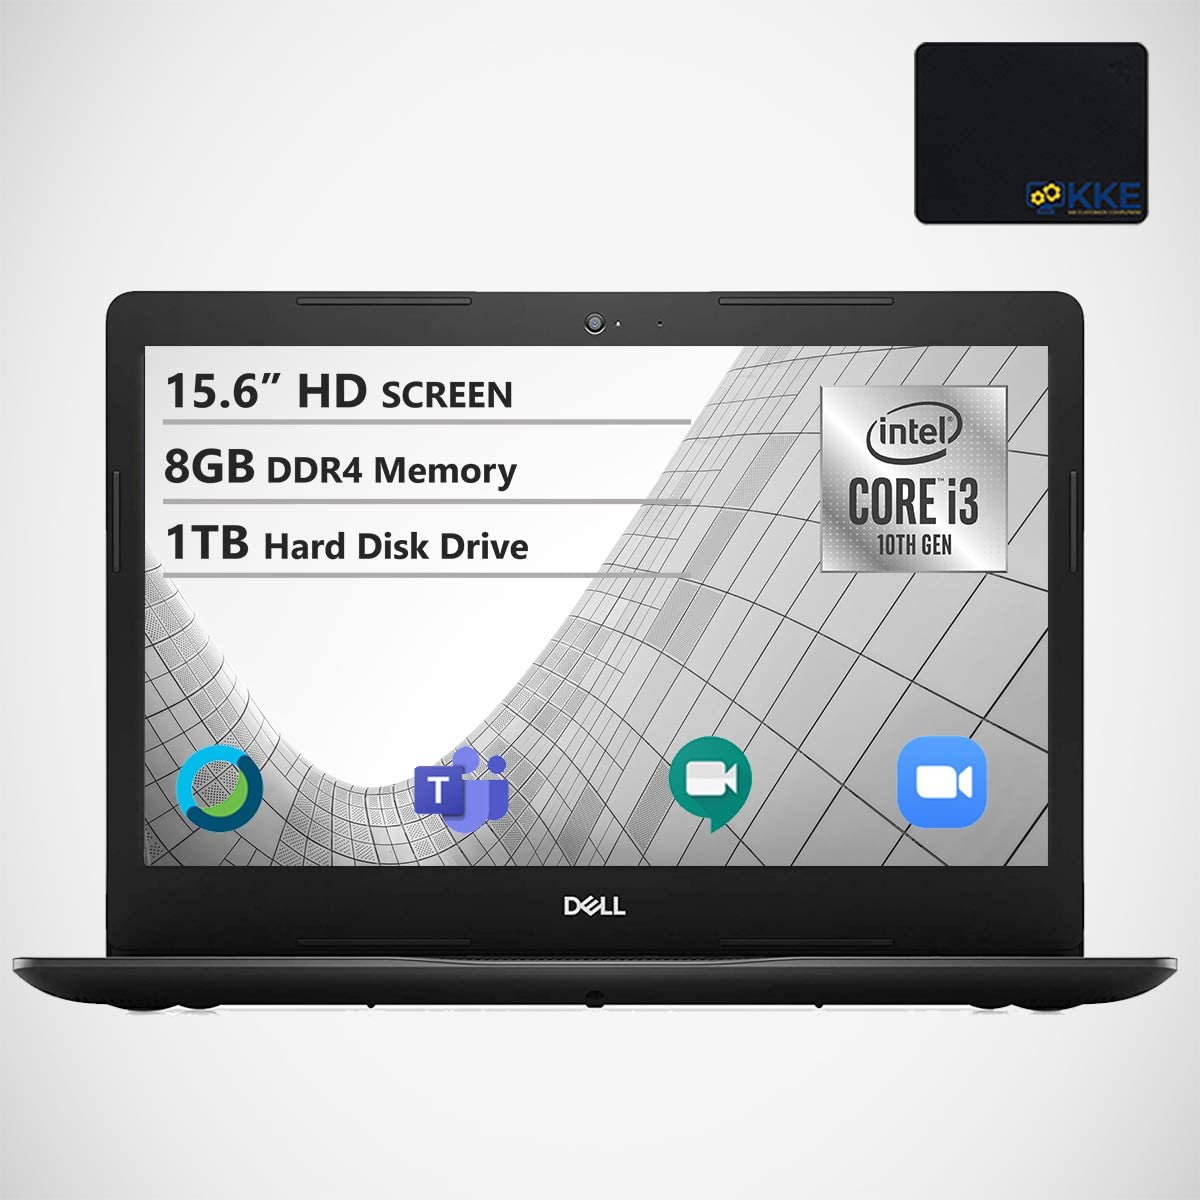 "Dell Inspiron 15.6"" HD Laptop, Intel Core i3-1005G1 Processor, 8GB DDR4 Memory, 1TB HDD, Webcam, Online Class Ready, WiFi, HDMI, Bluetooth, KKE Mousepad, Win10 Home, Black"